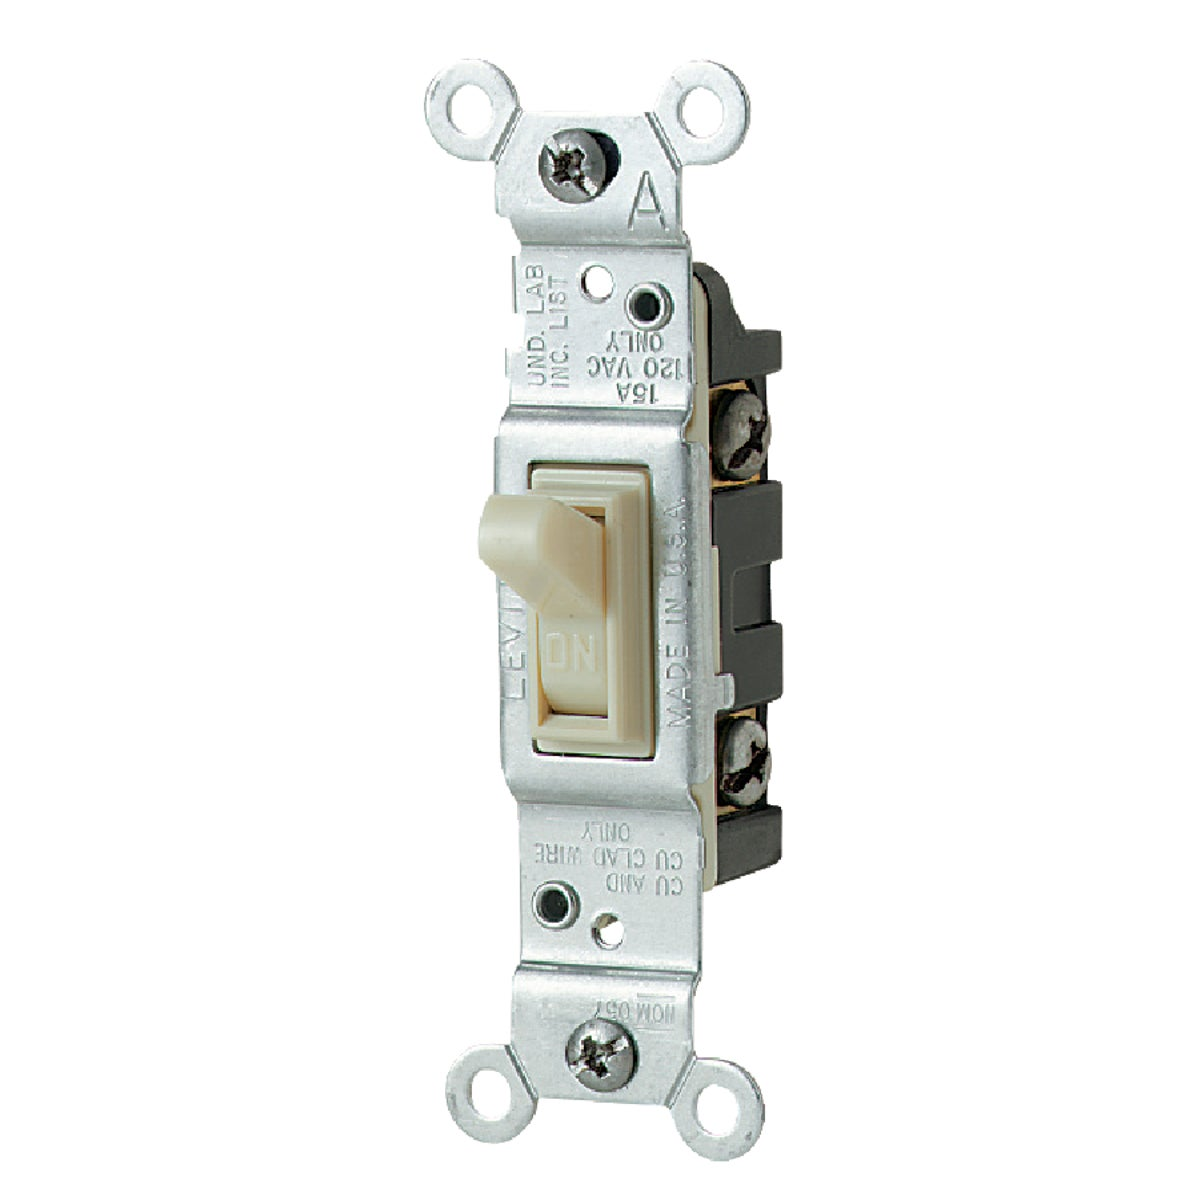 IV 1POLE SWITCH - 1451ICP by Leviton Mfg Co